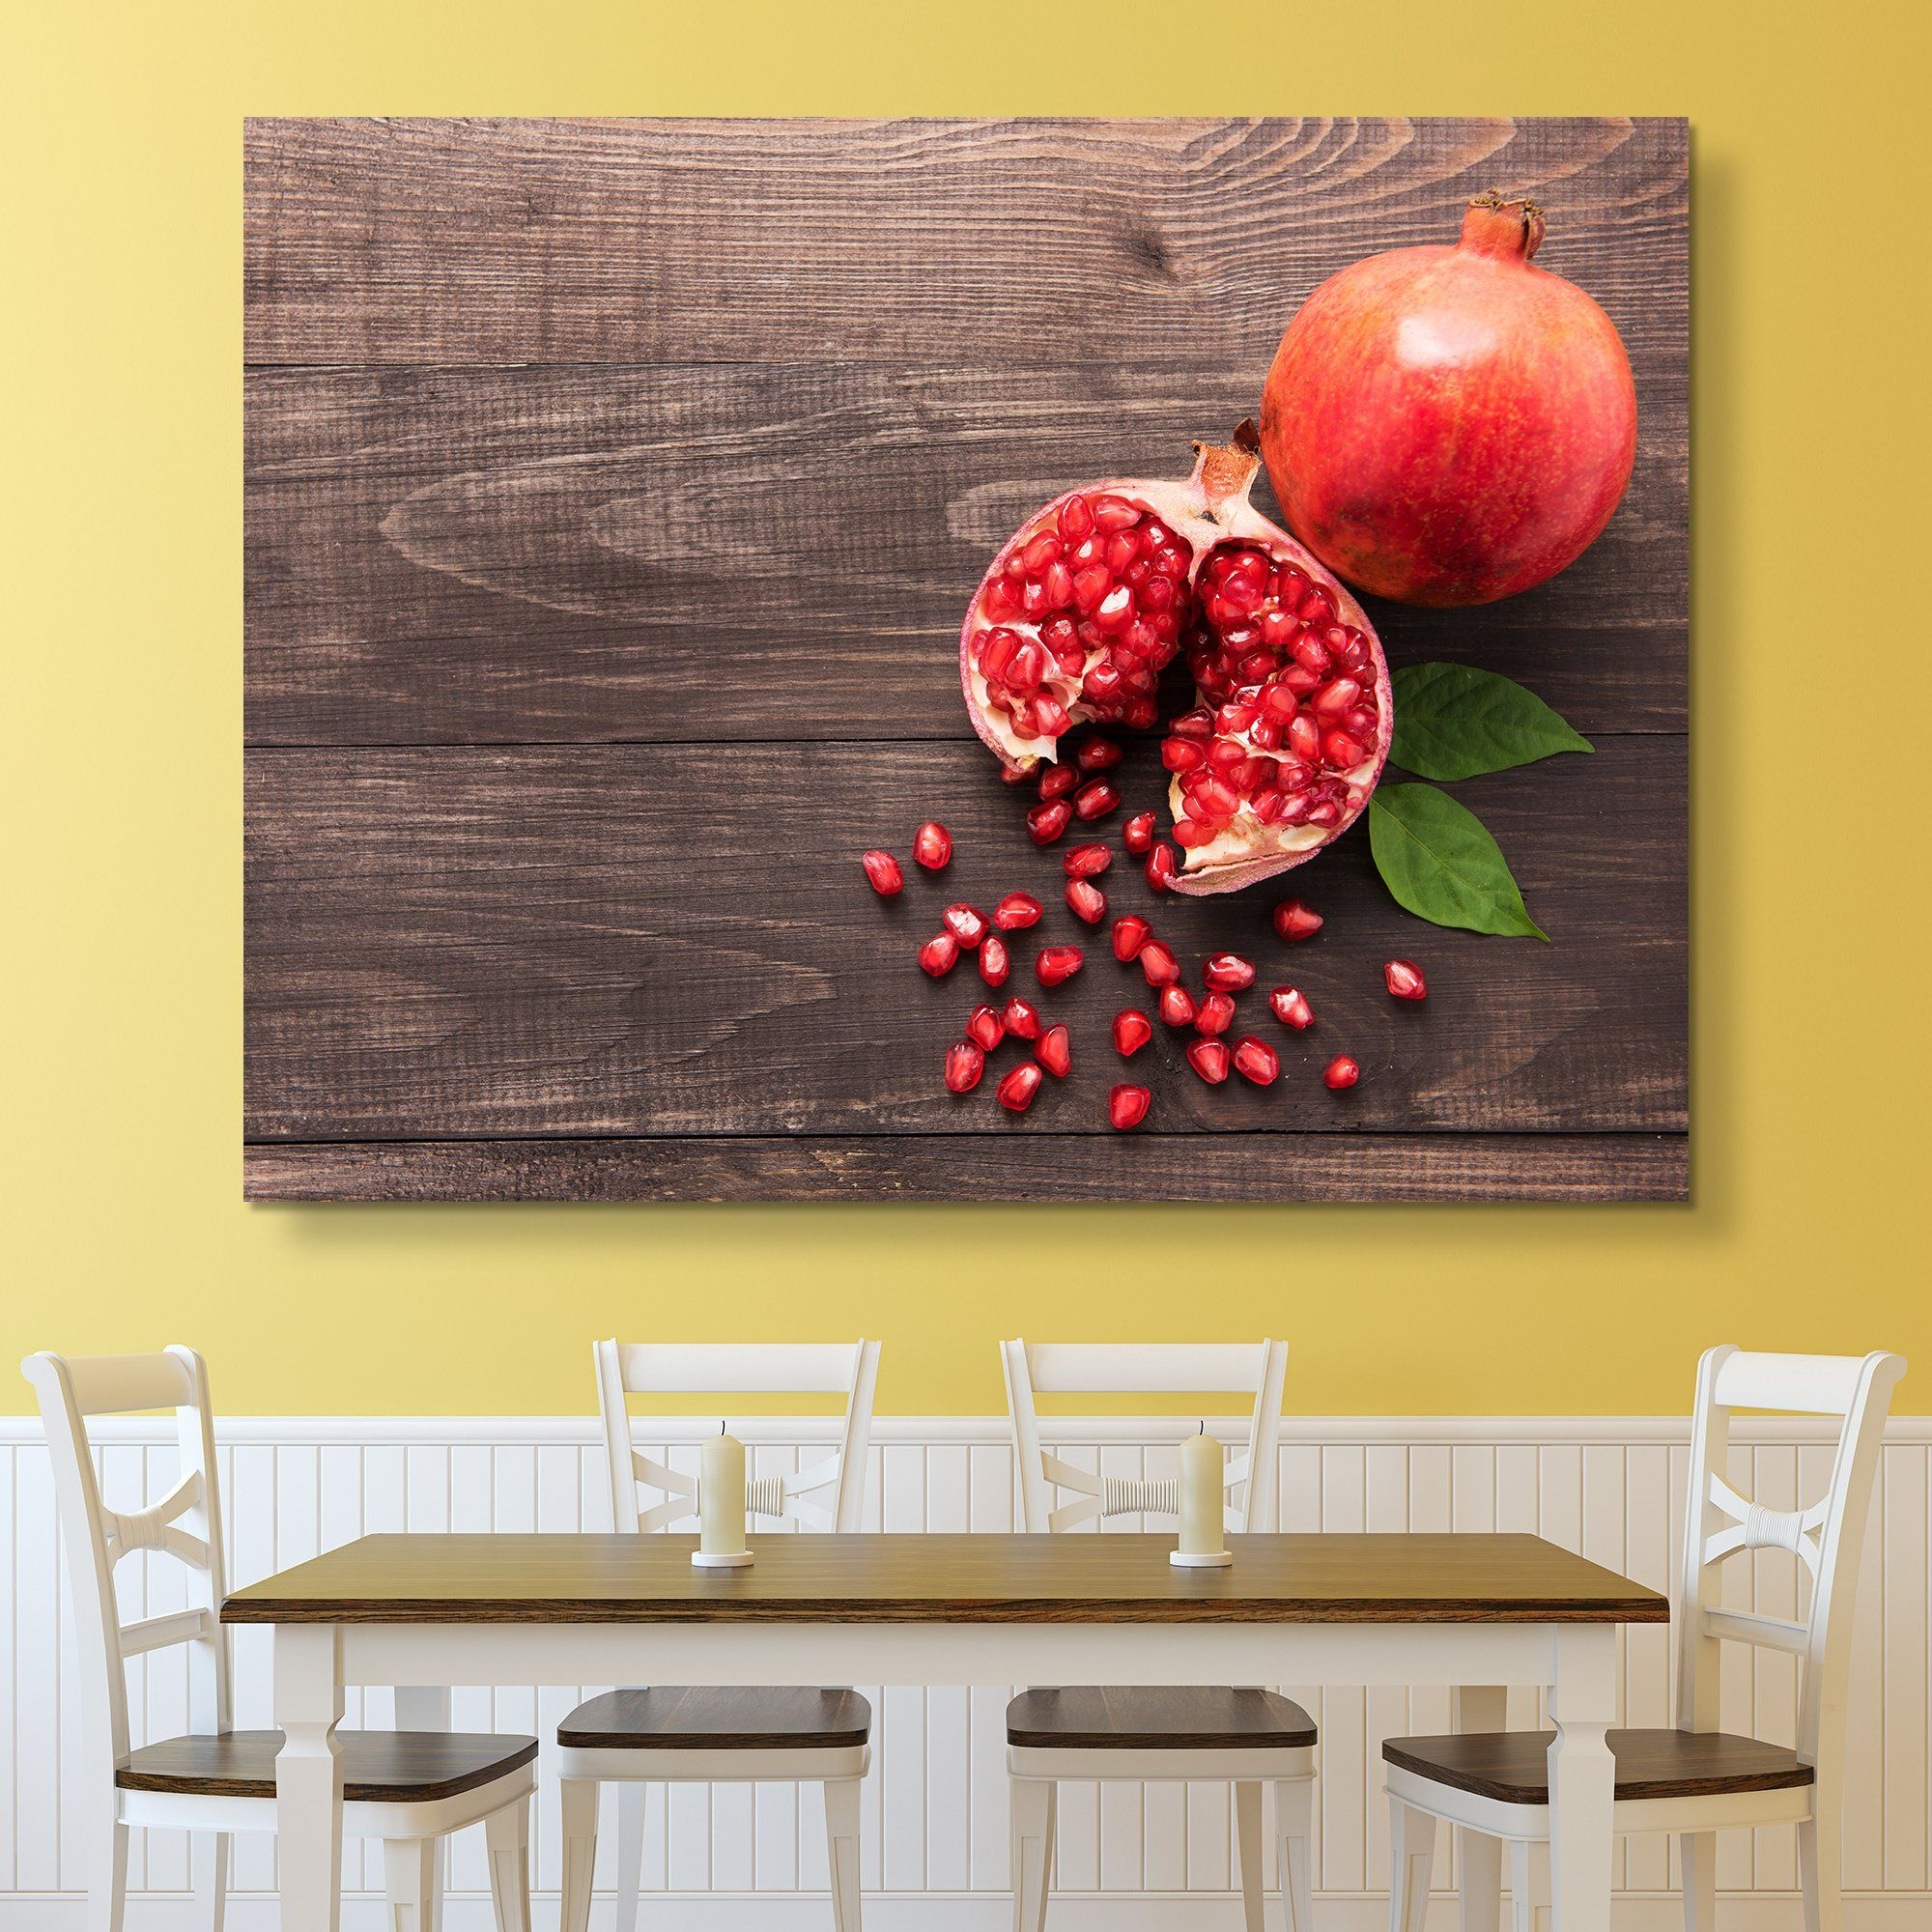 Pomegranate wall art